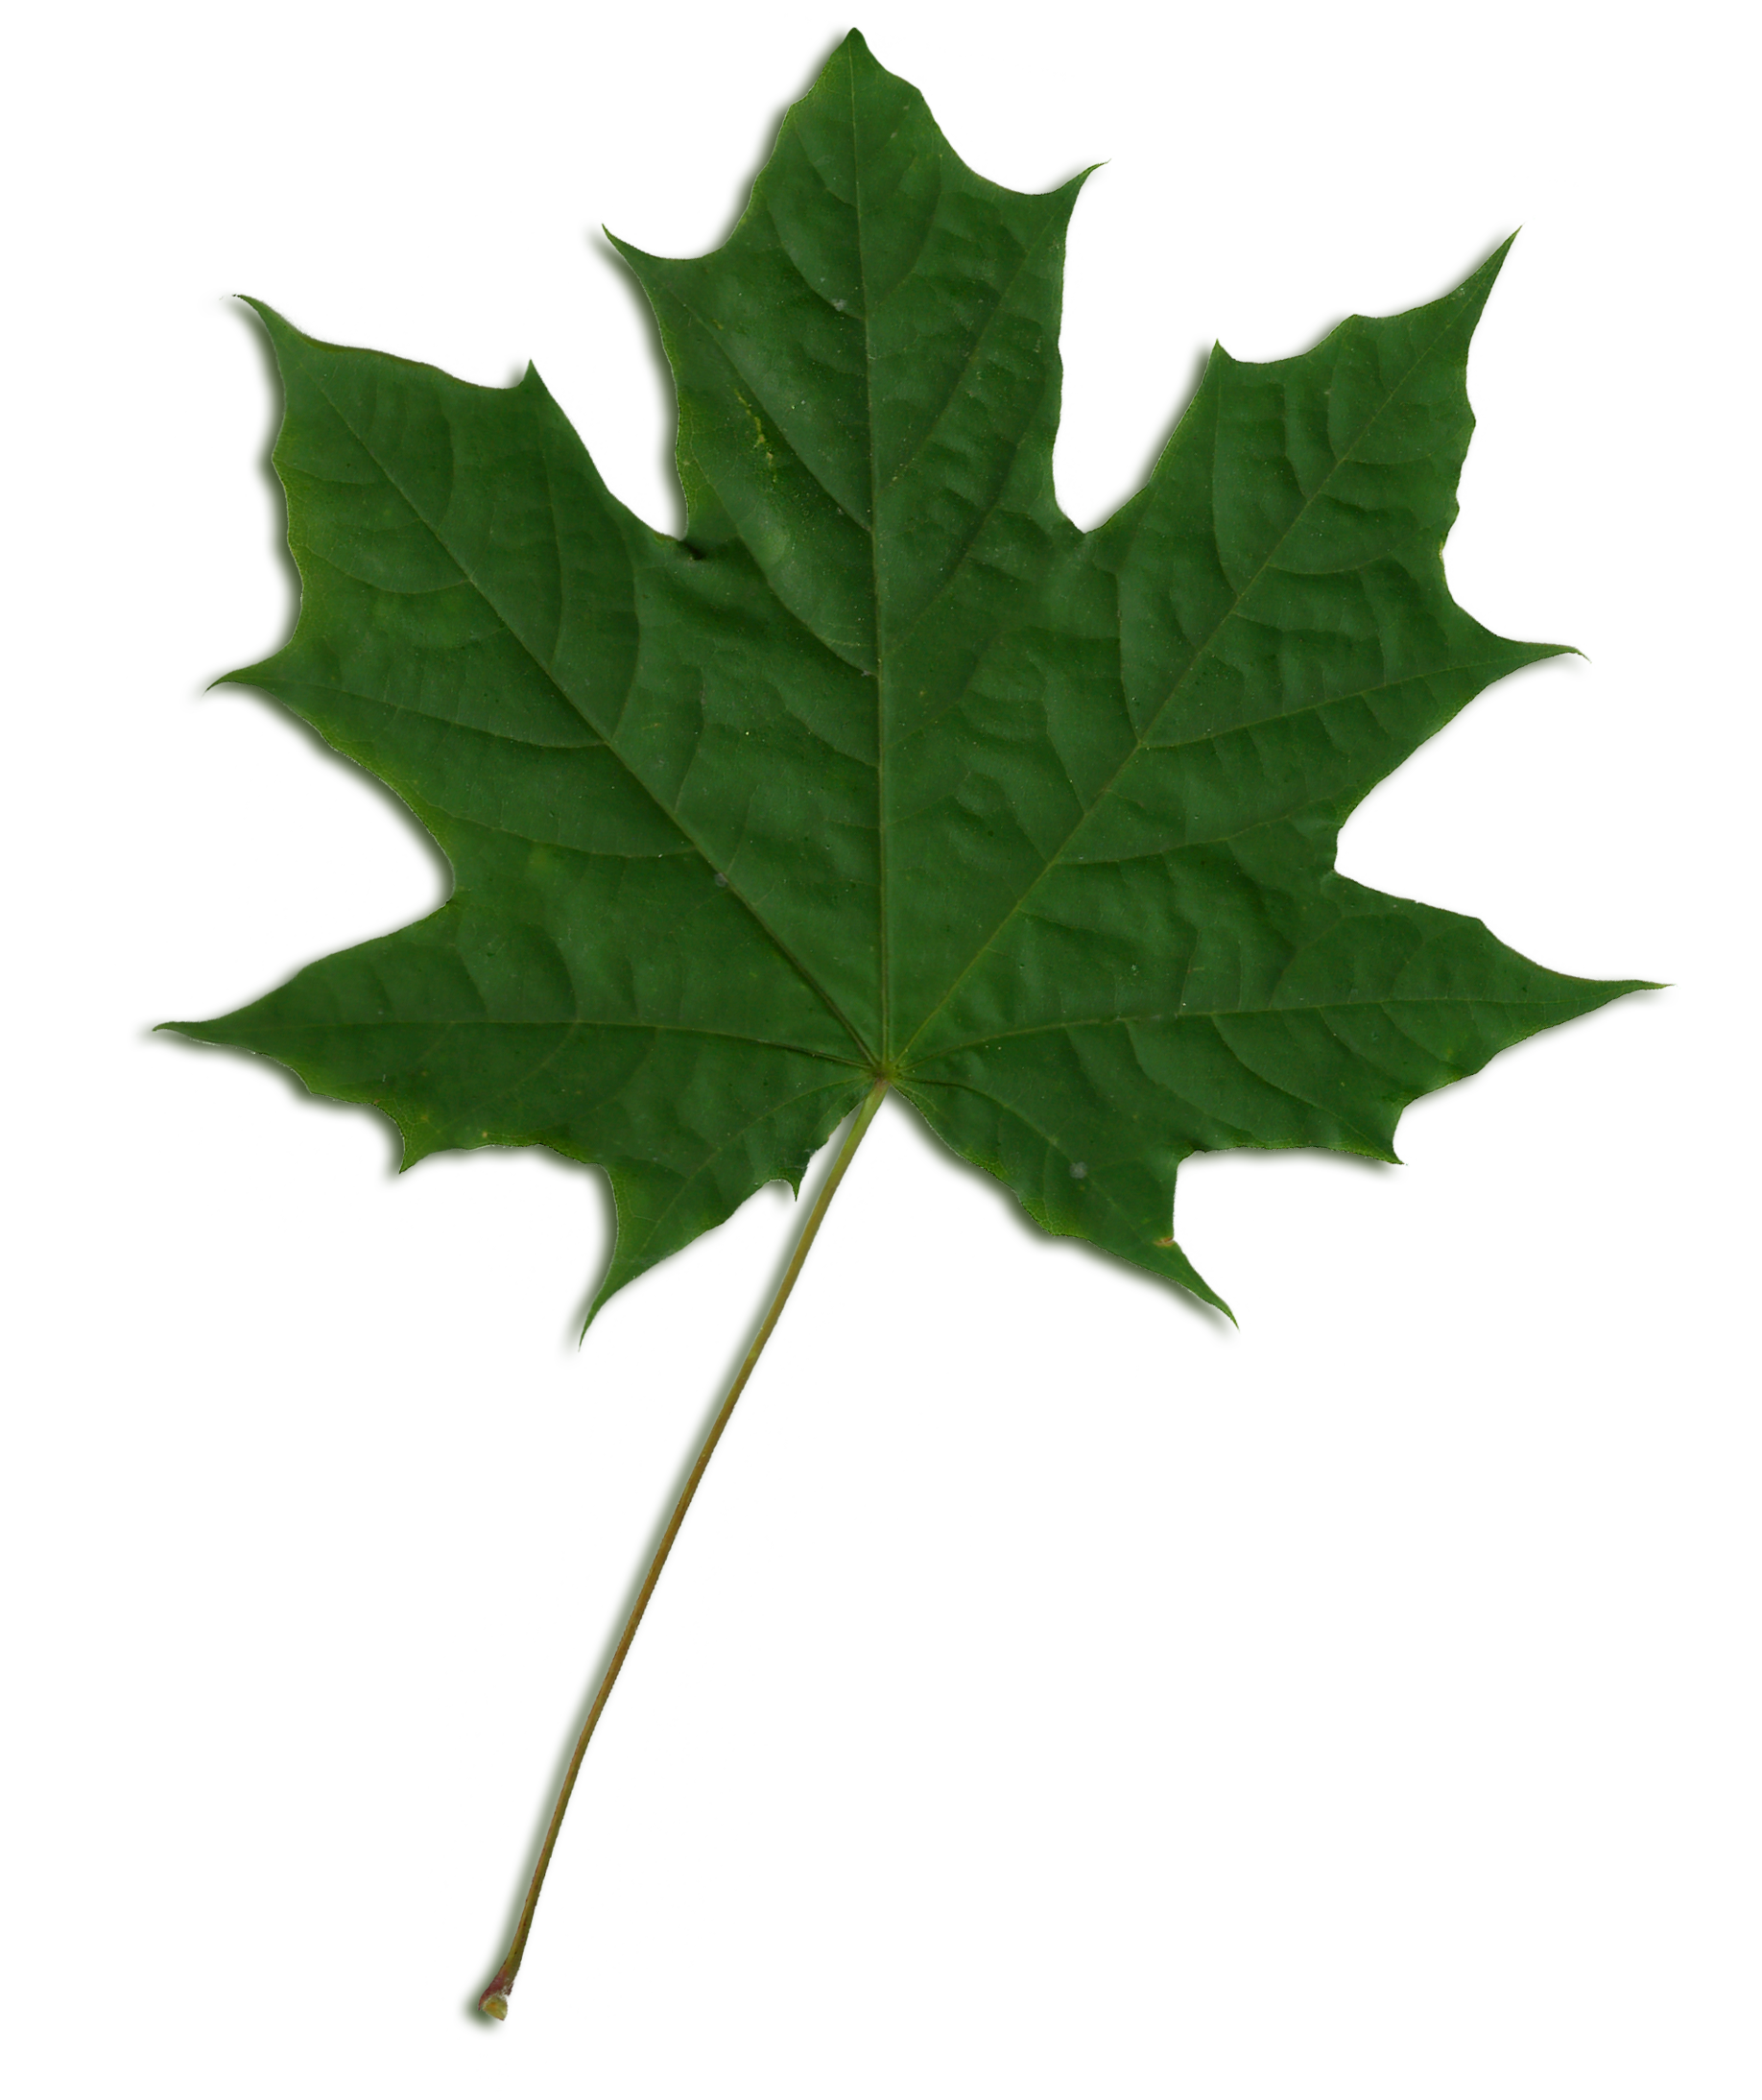 File:Acer scanned leaf.png - Sycamore Tree Leaf PNG